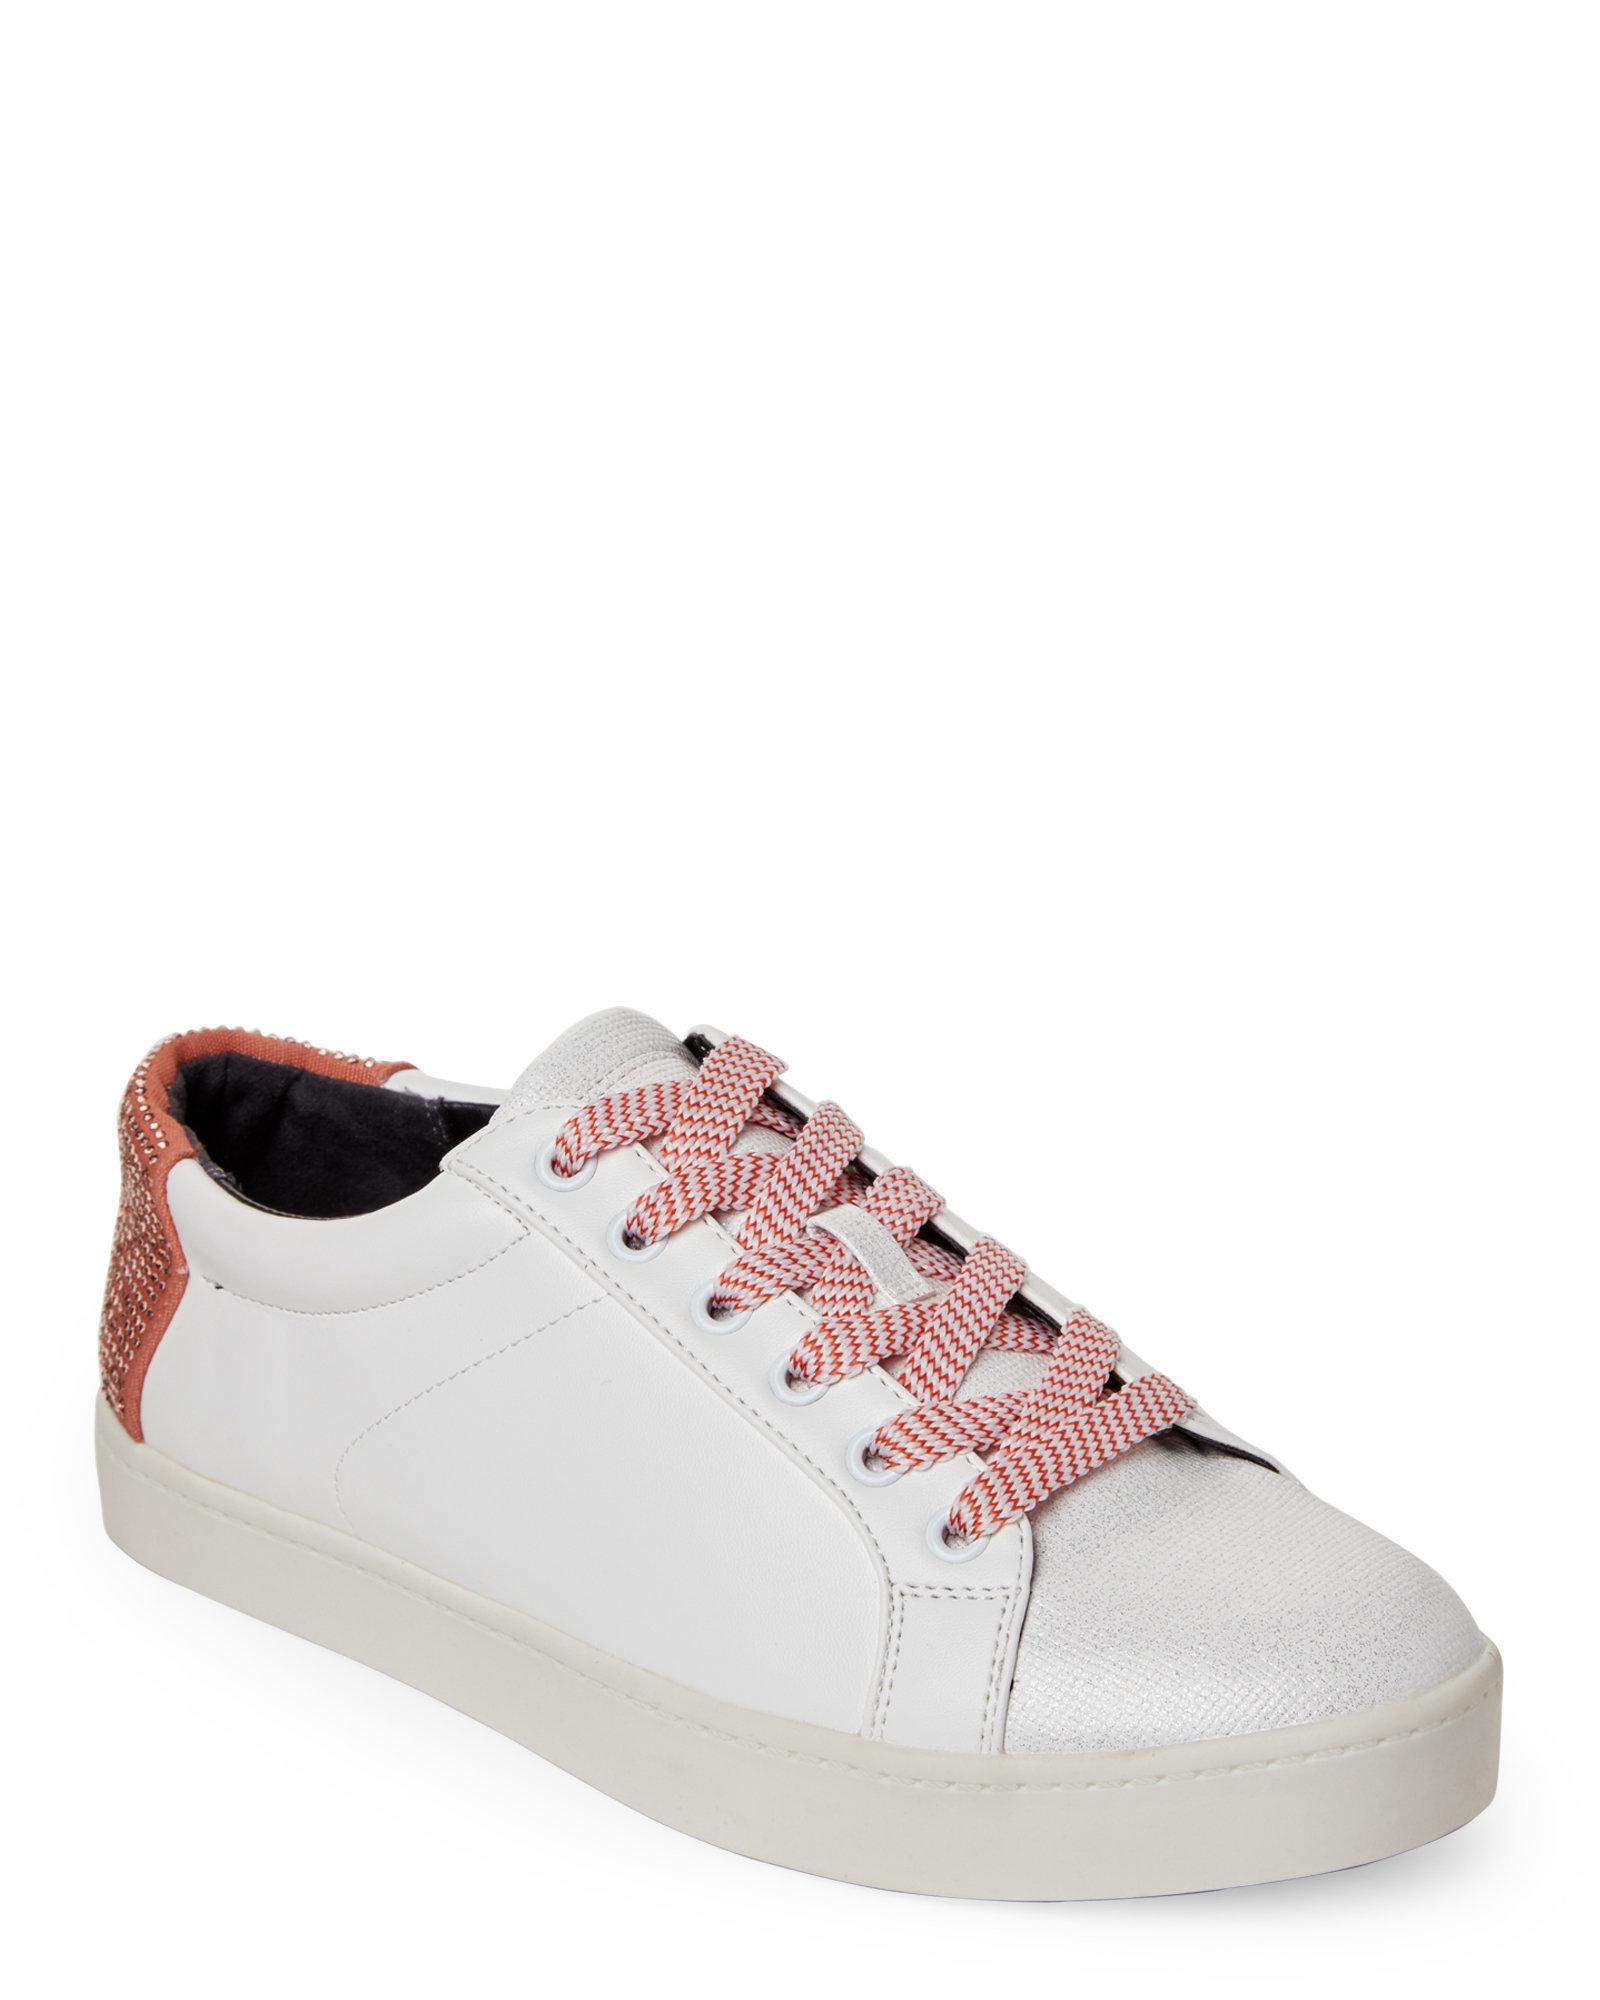 901a644134ab Lyst - Circus By Sam Edelman White   Creamsicle Collins Low-top ...